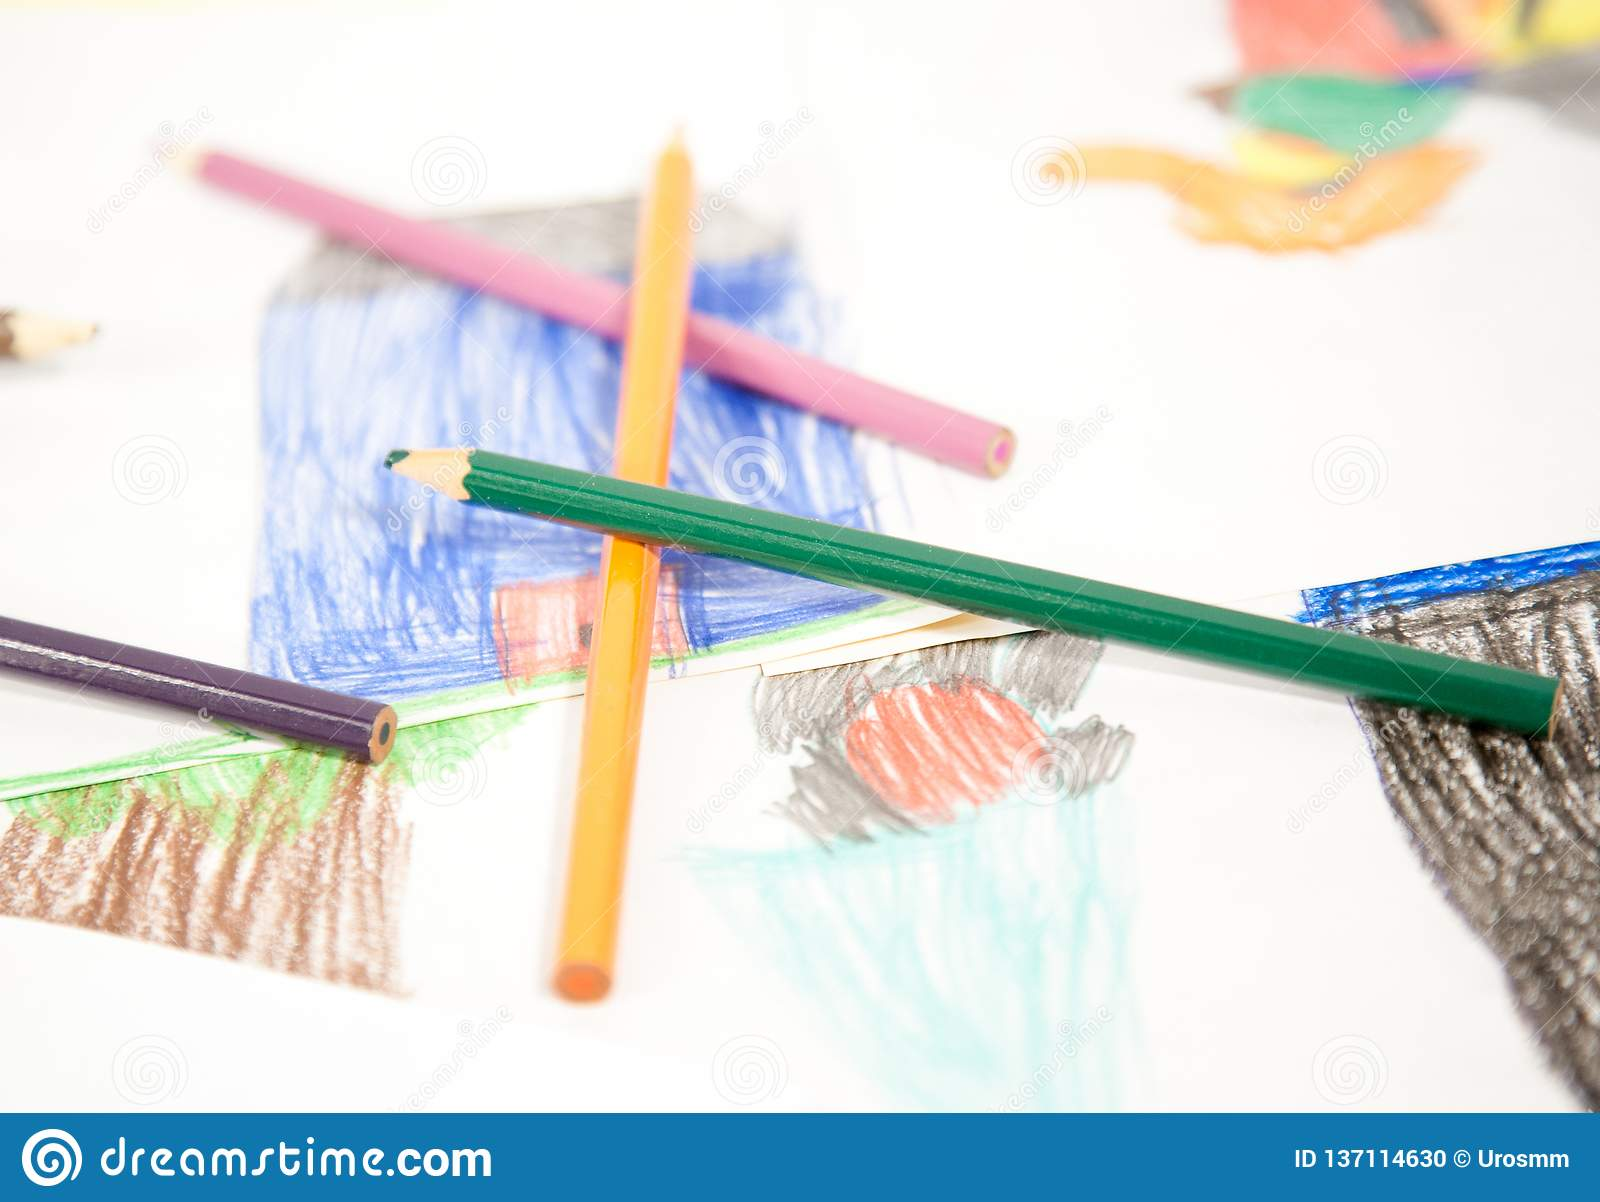 Coloring pencils of all colours on the drawings of a child sharpened with wooden scabs